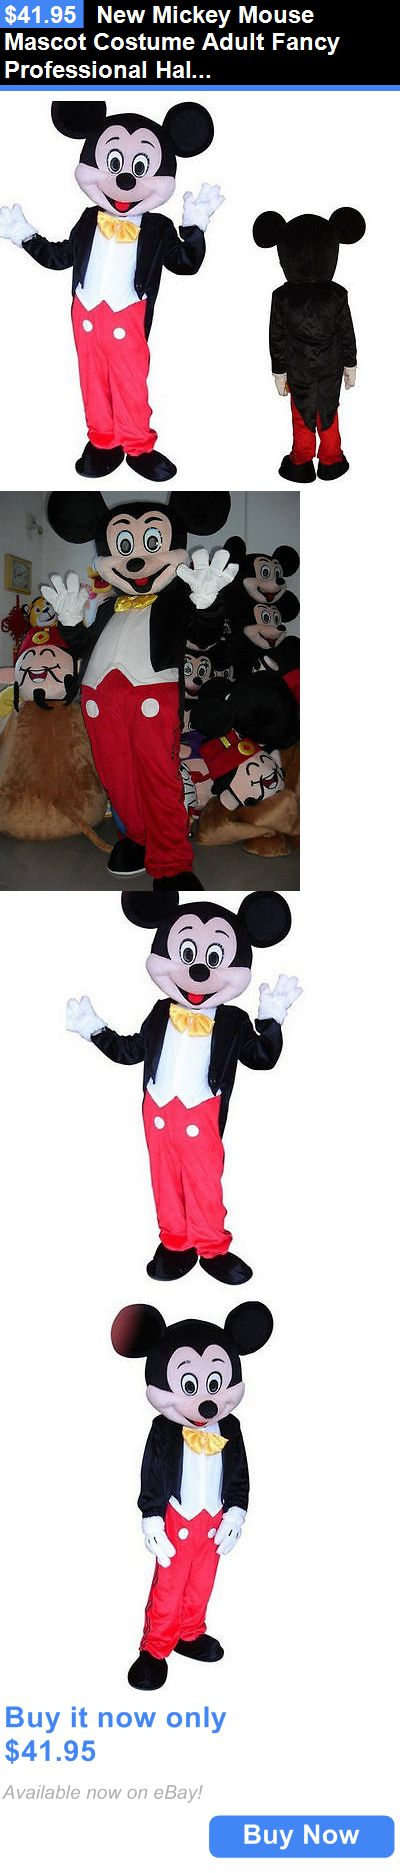 Halloween Costumes: New Mickey Mouse Mascot Costume Adult Fancy Professional Halloween Size Ca Hot BUY IT NOW ONLY: $41.95